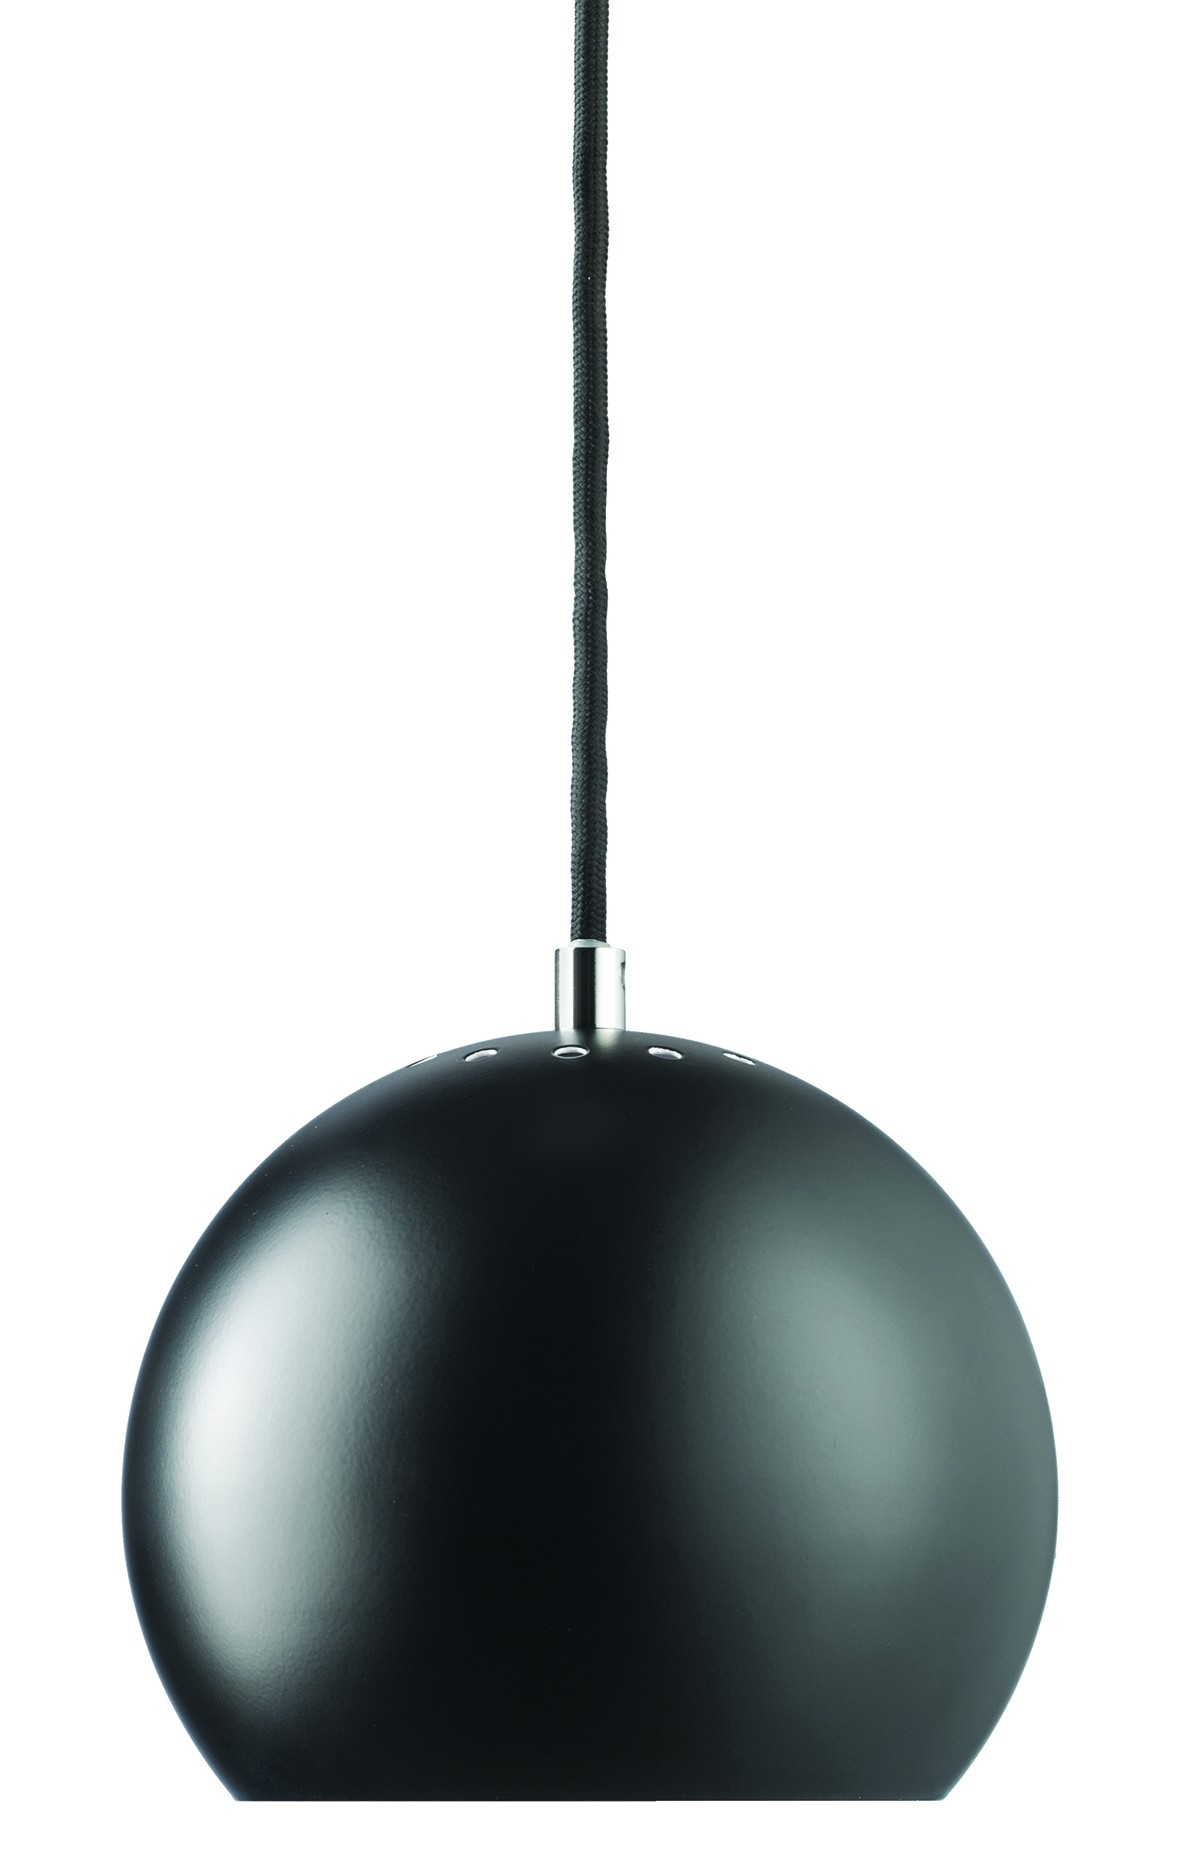 Suspension Noir Metal Frandsen Ball Hanging Lamp Suspension Black Matt Metal